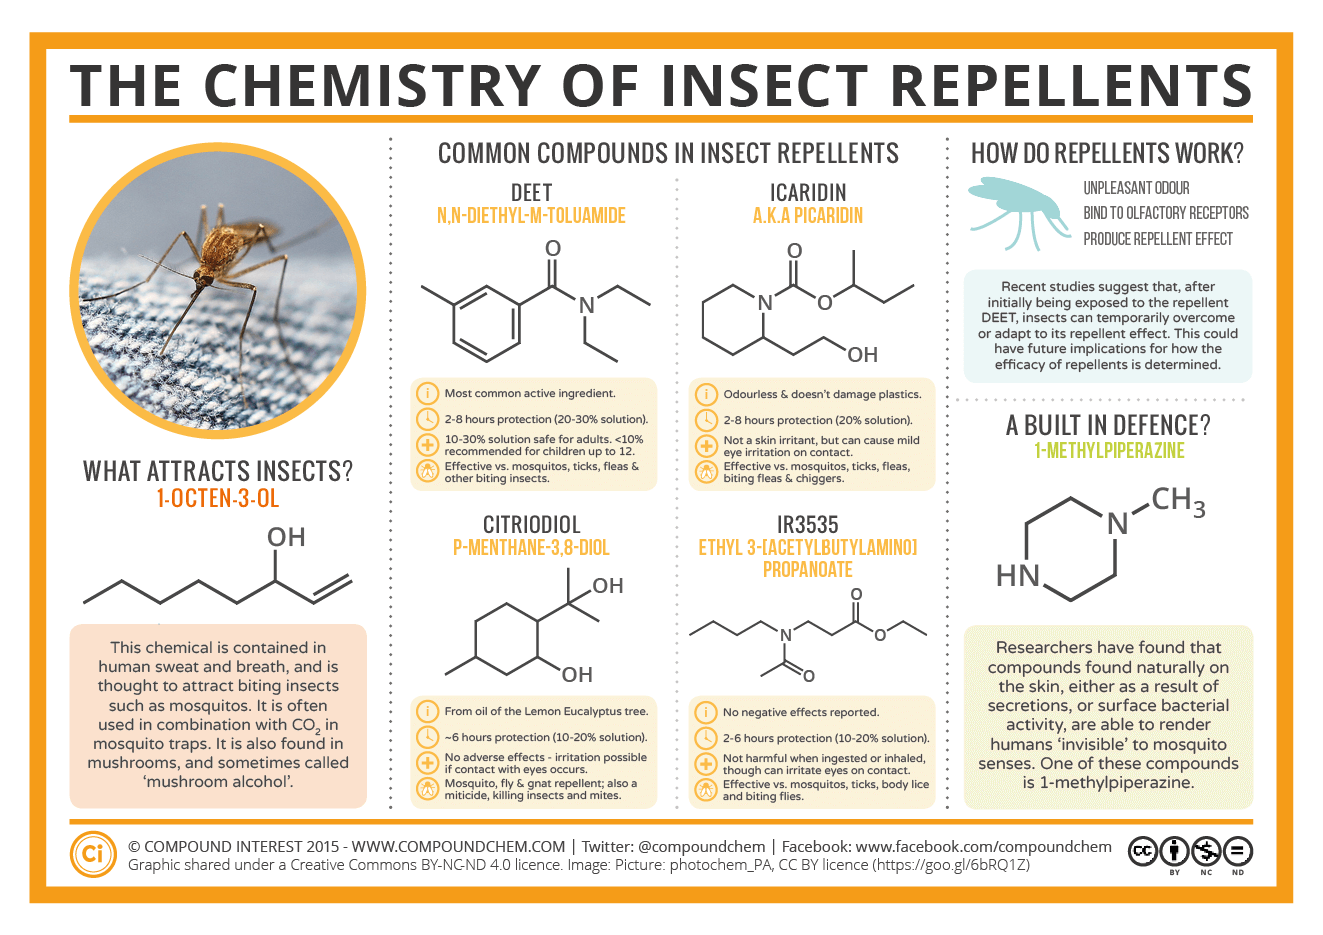 A chart on the chemistry of Insect Repellents.